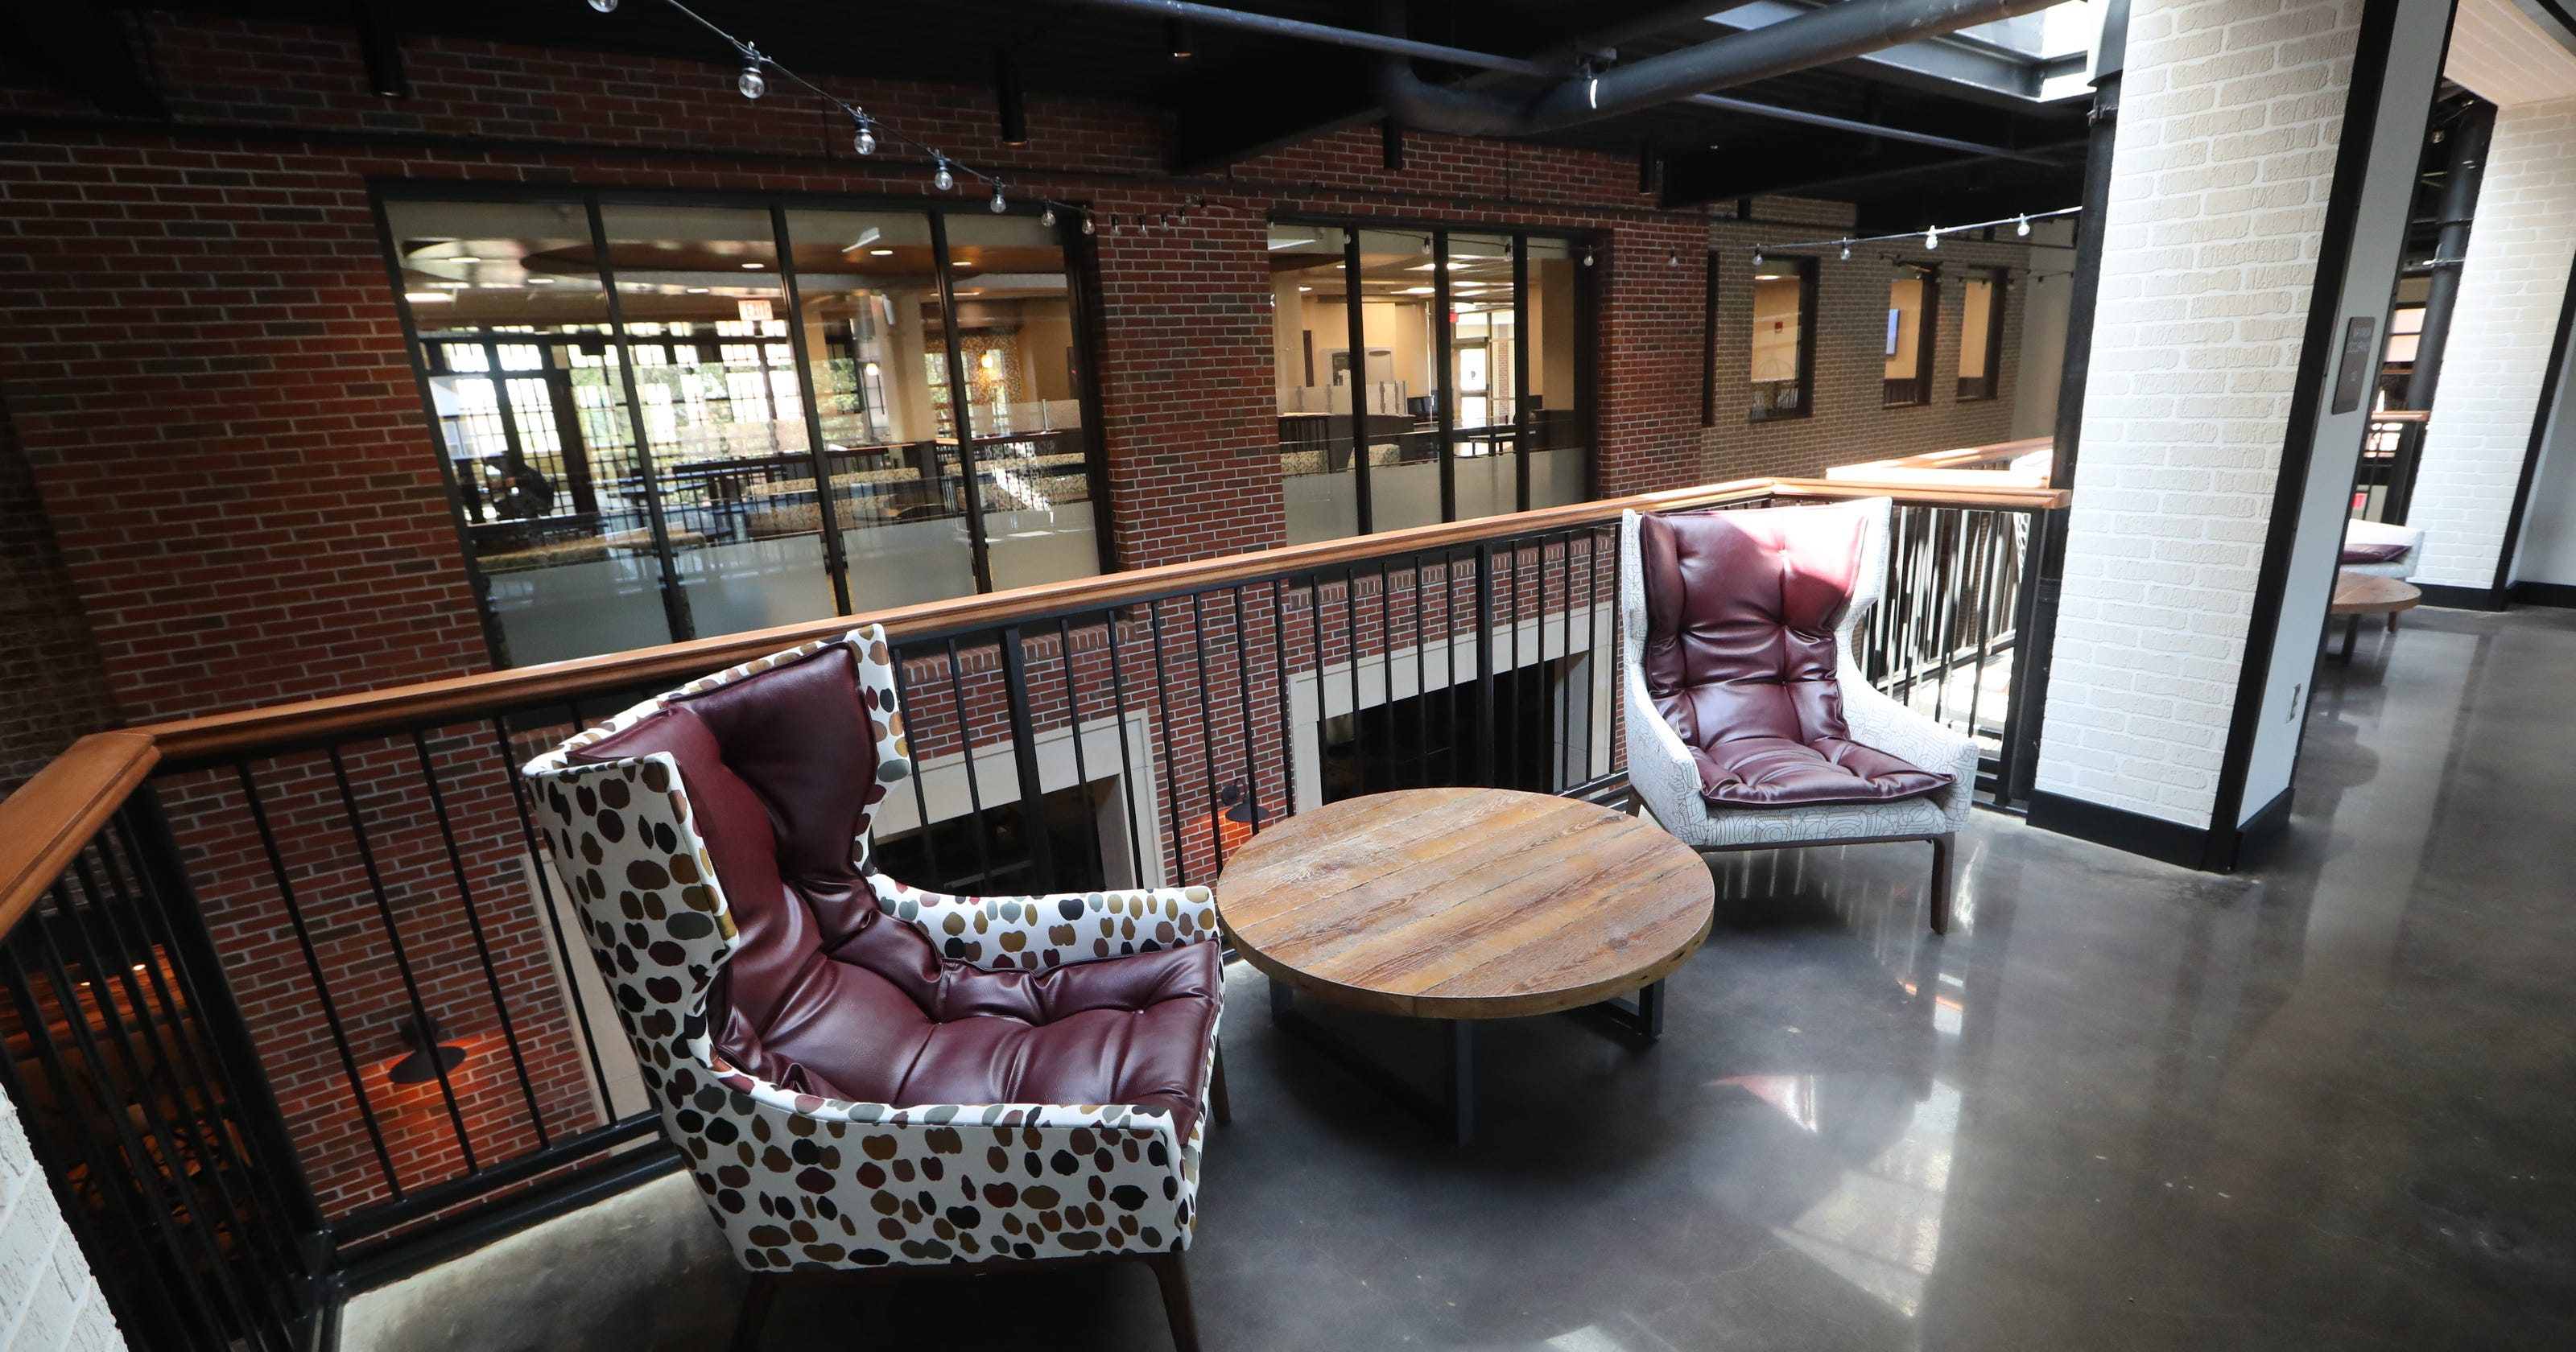 Fsu Introduces Residence Hall With Built In Dining As One Of Two New